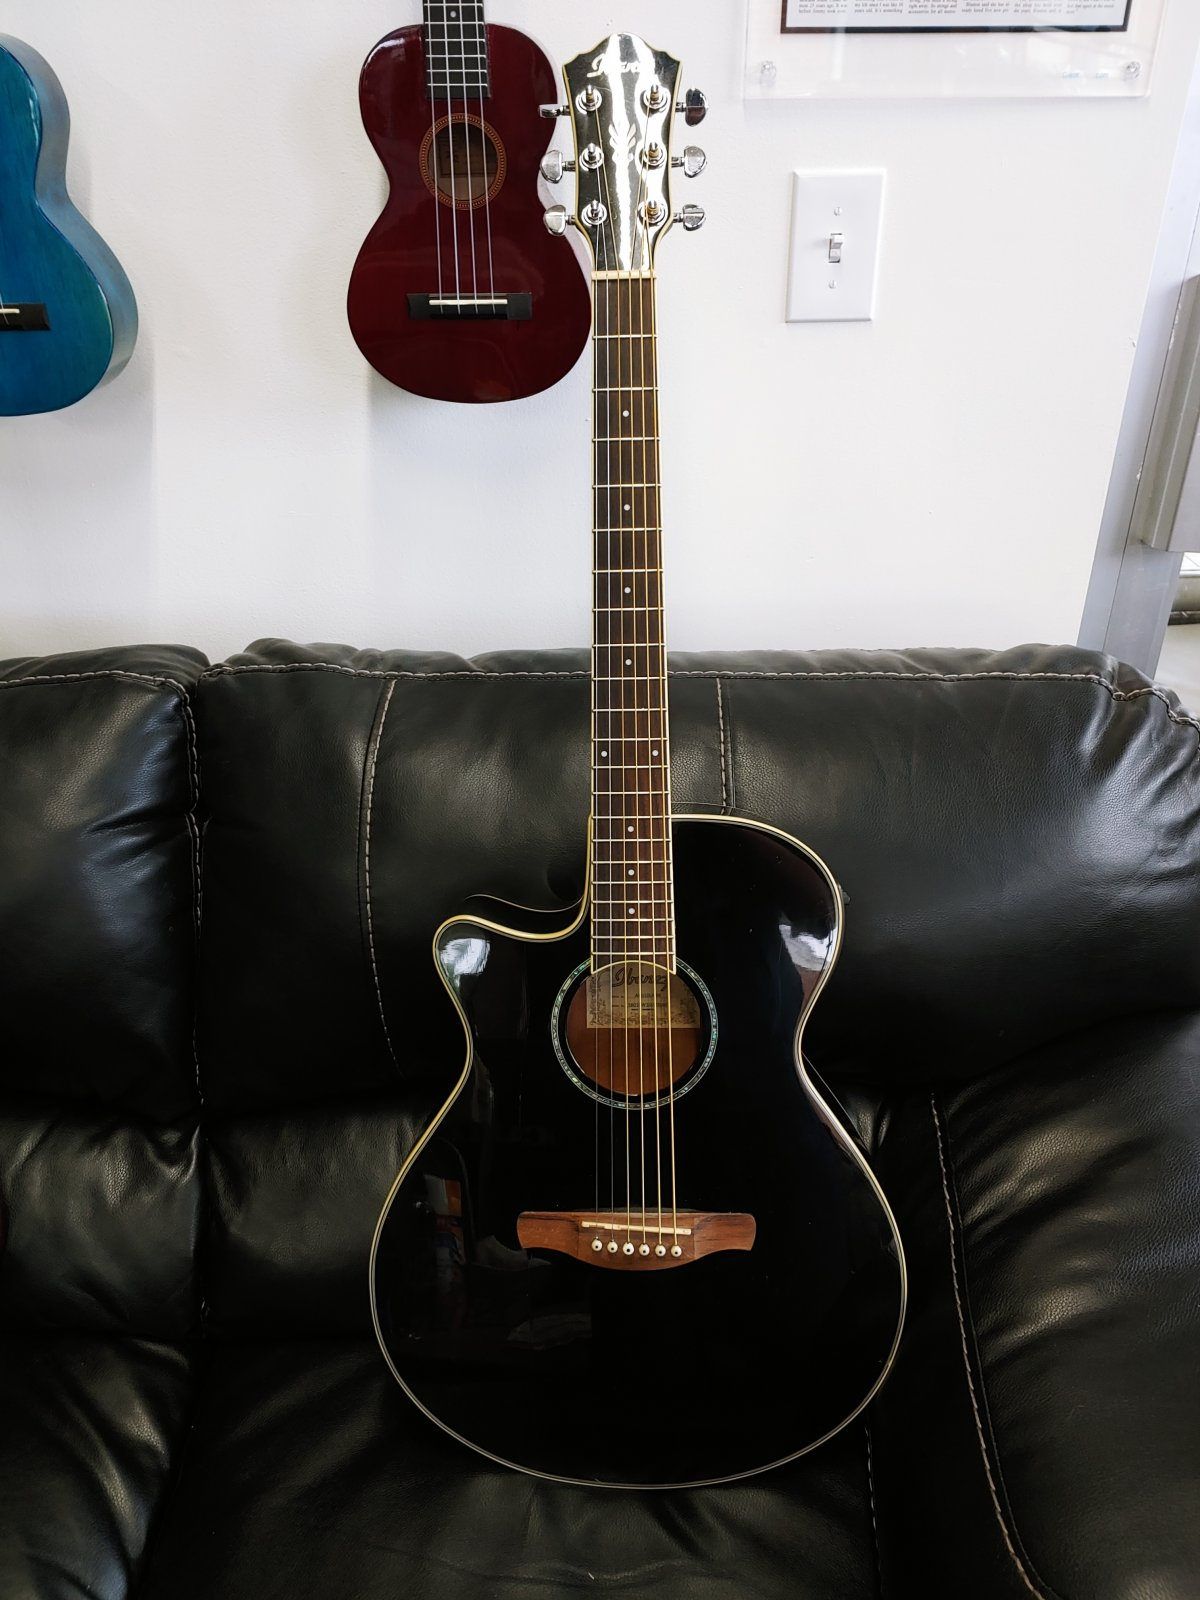 Ibanez Left Handed Acoustic Electric Guitar (used)